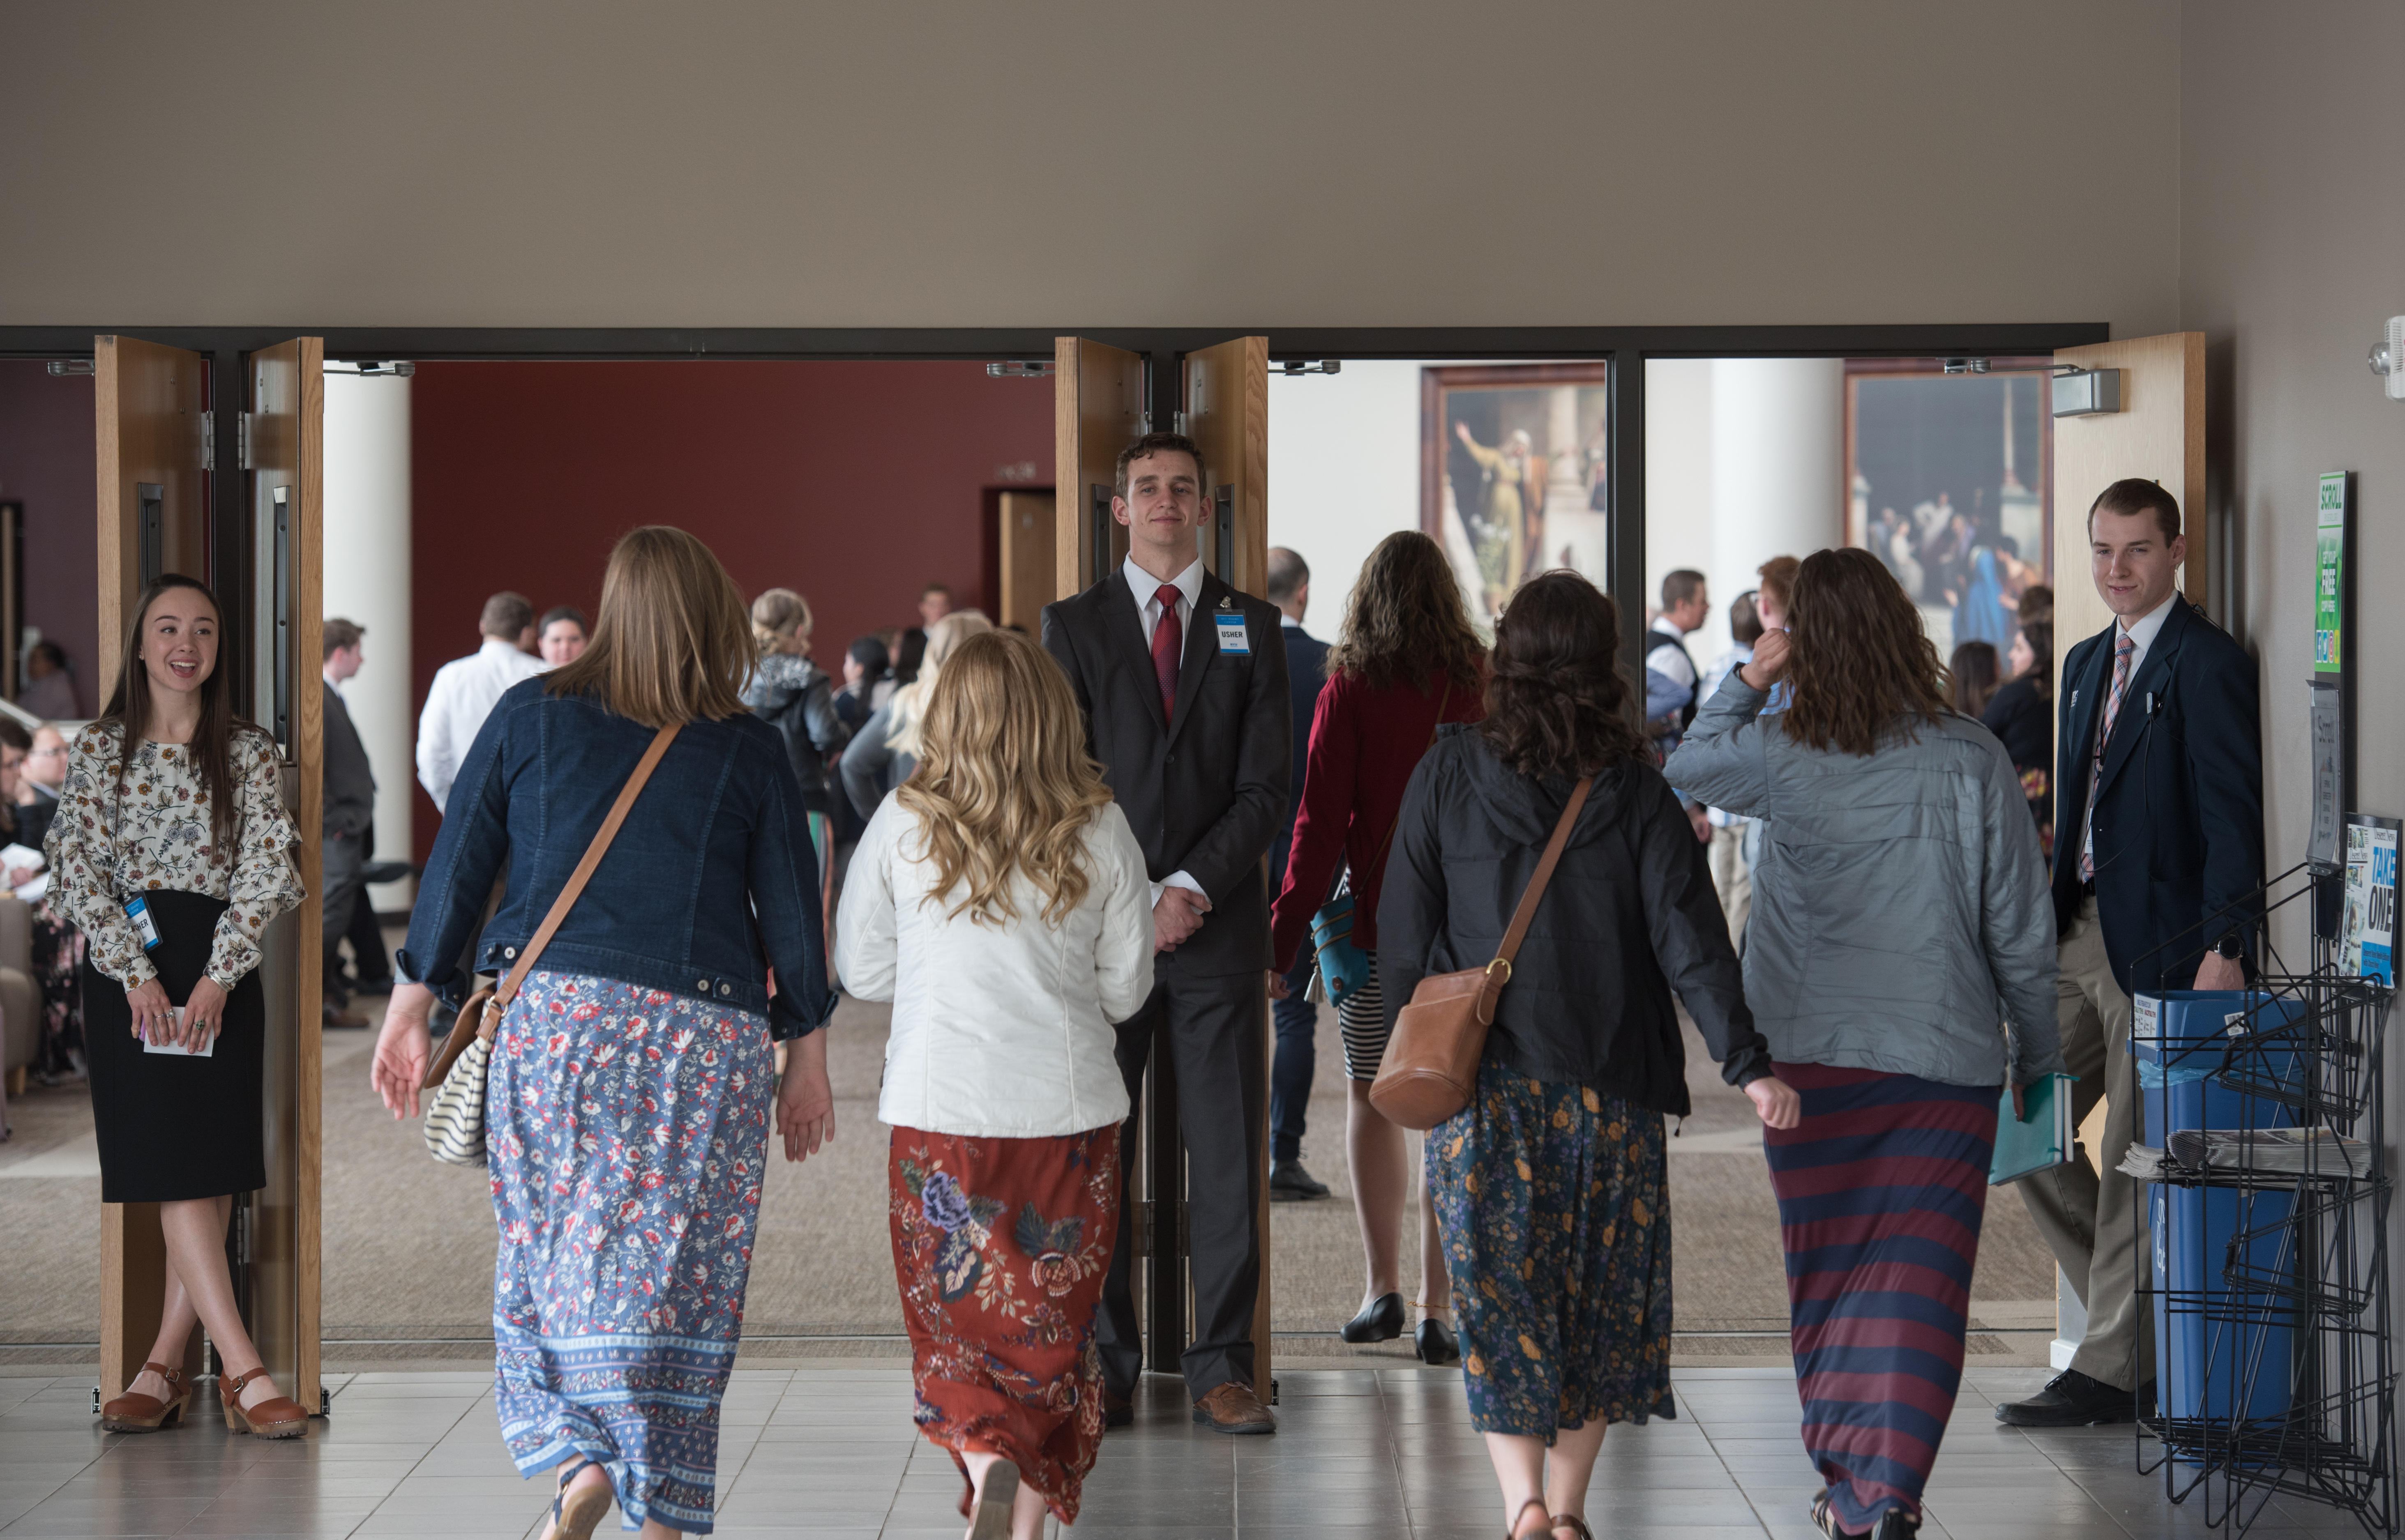 Students arrive at the BYU-Idaho Center to hear Elder Ronald A. Rasband and his wife, Sister Melanie Rasband, speak during a devotional on April 28, 2019.